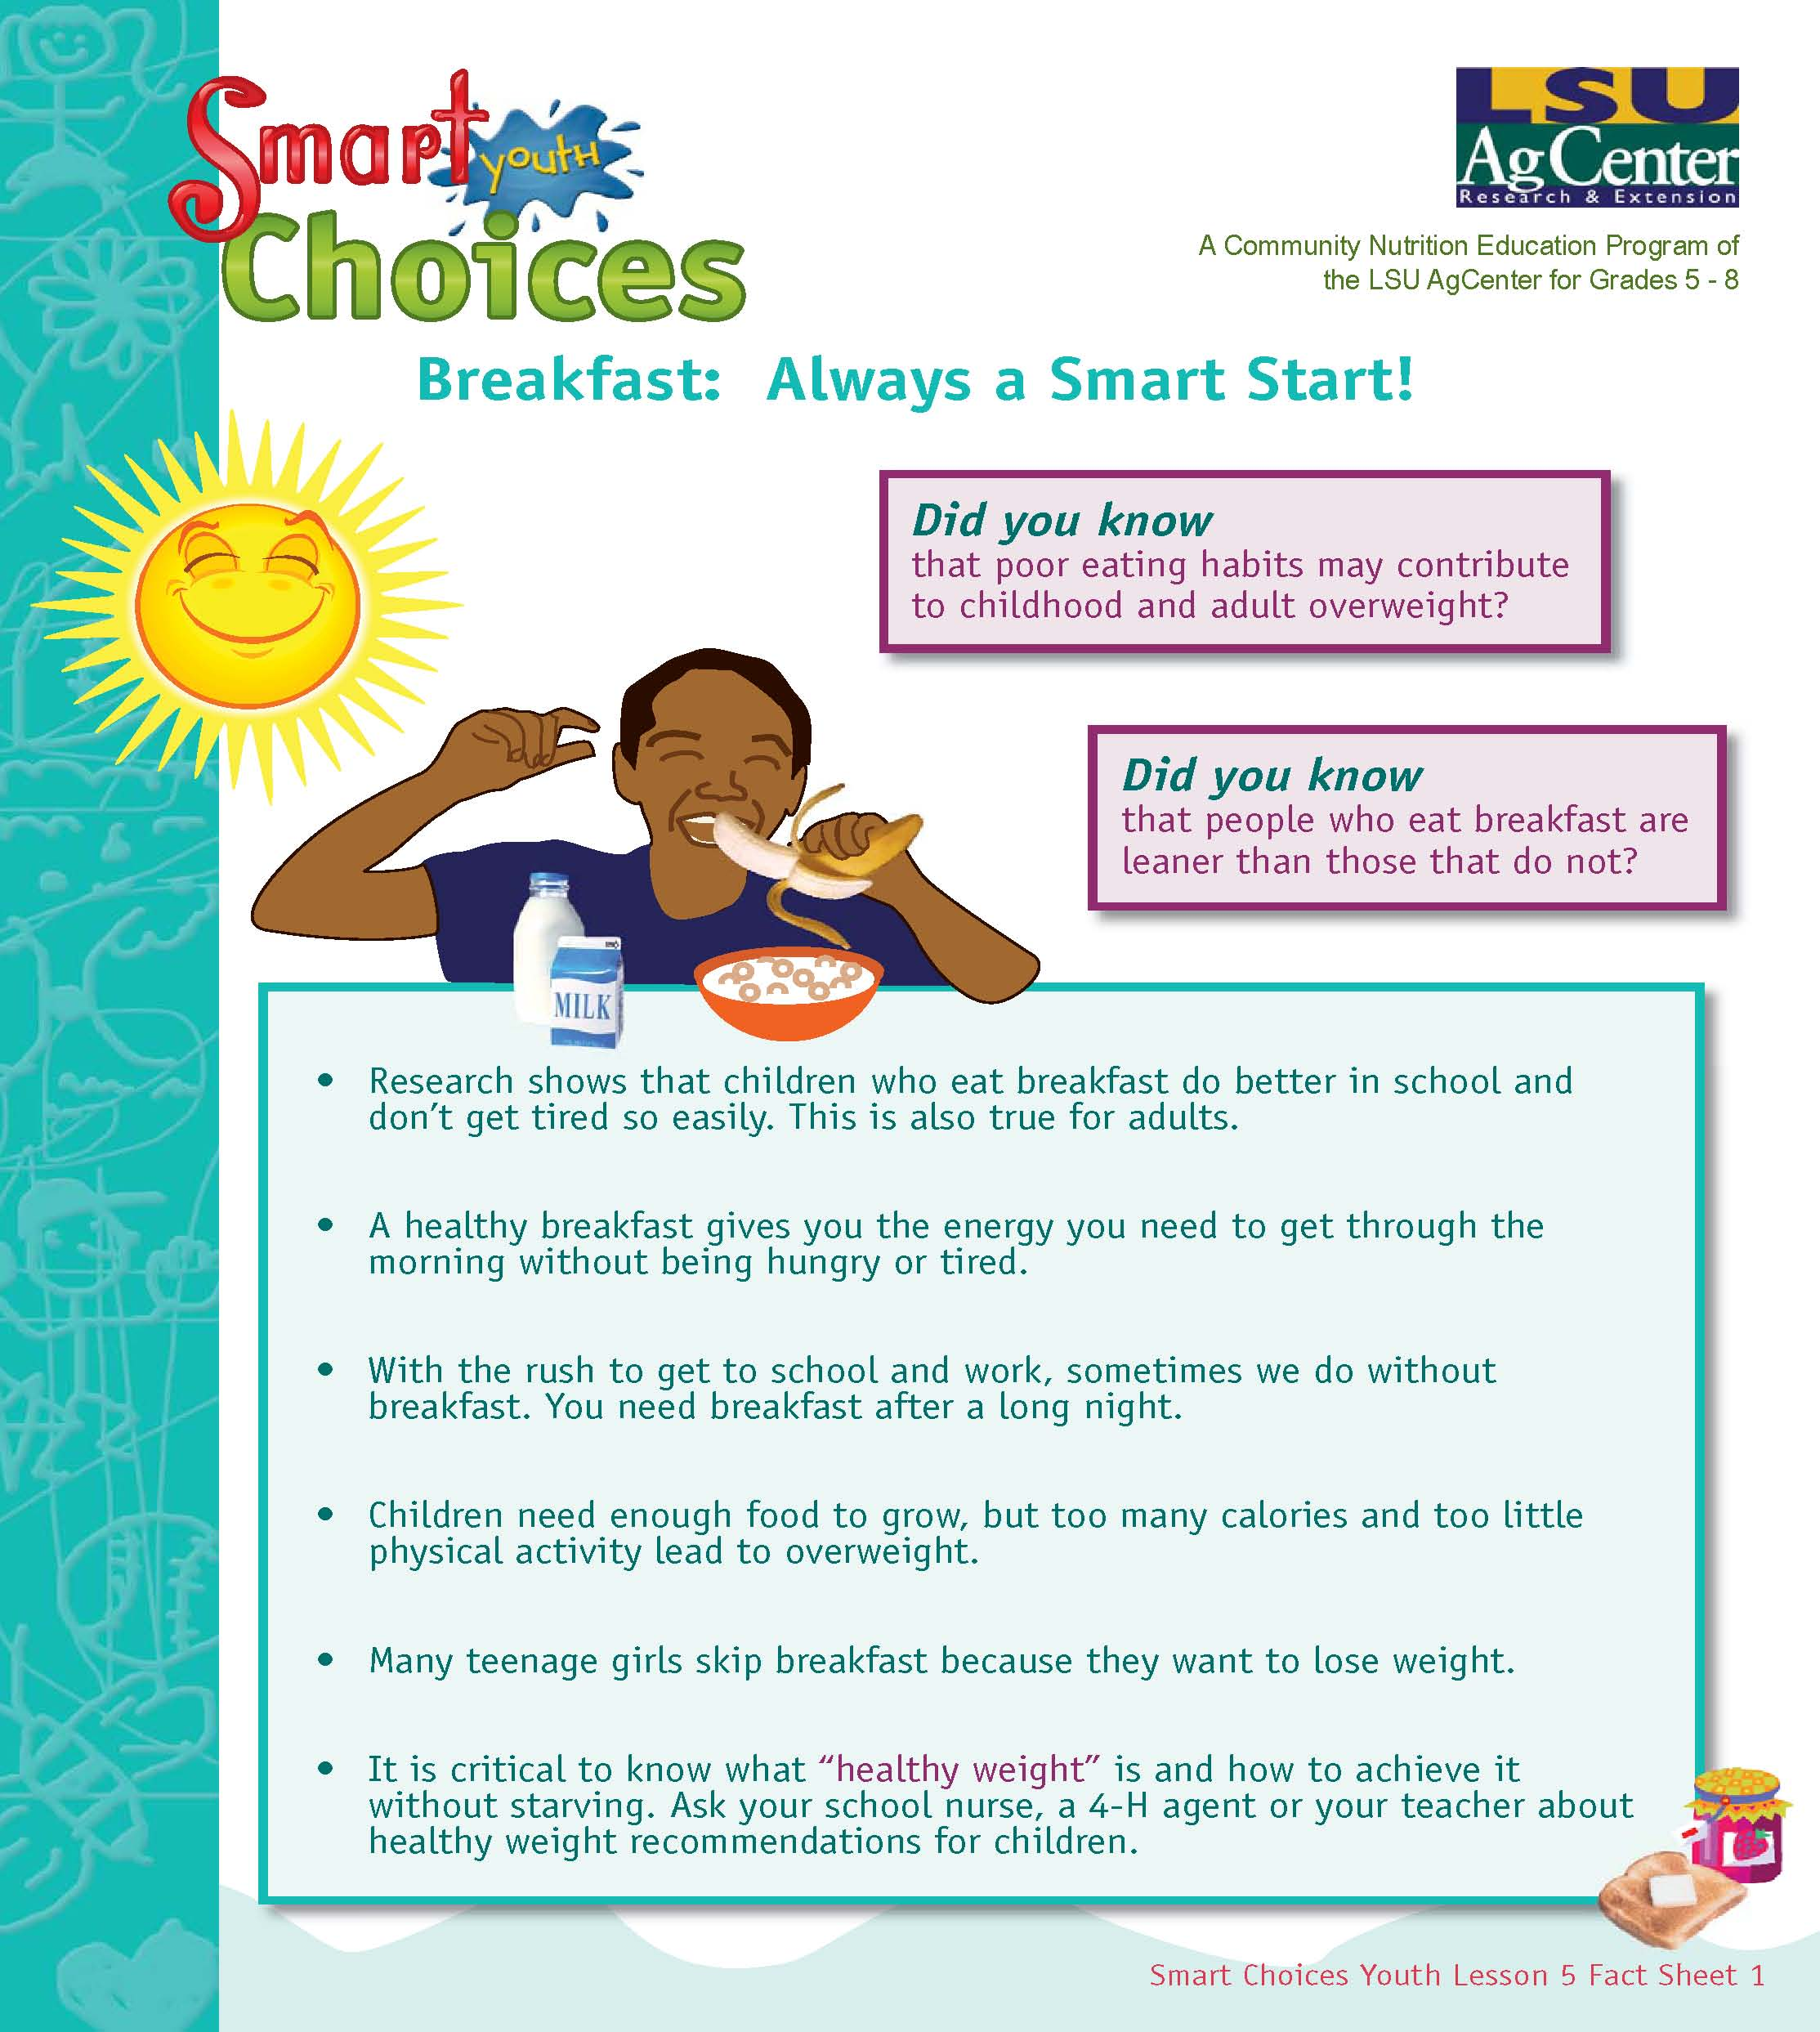 Breakfast: Always a Smart Start